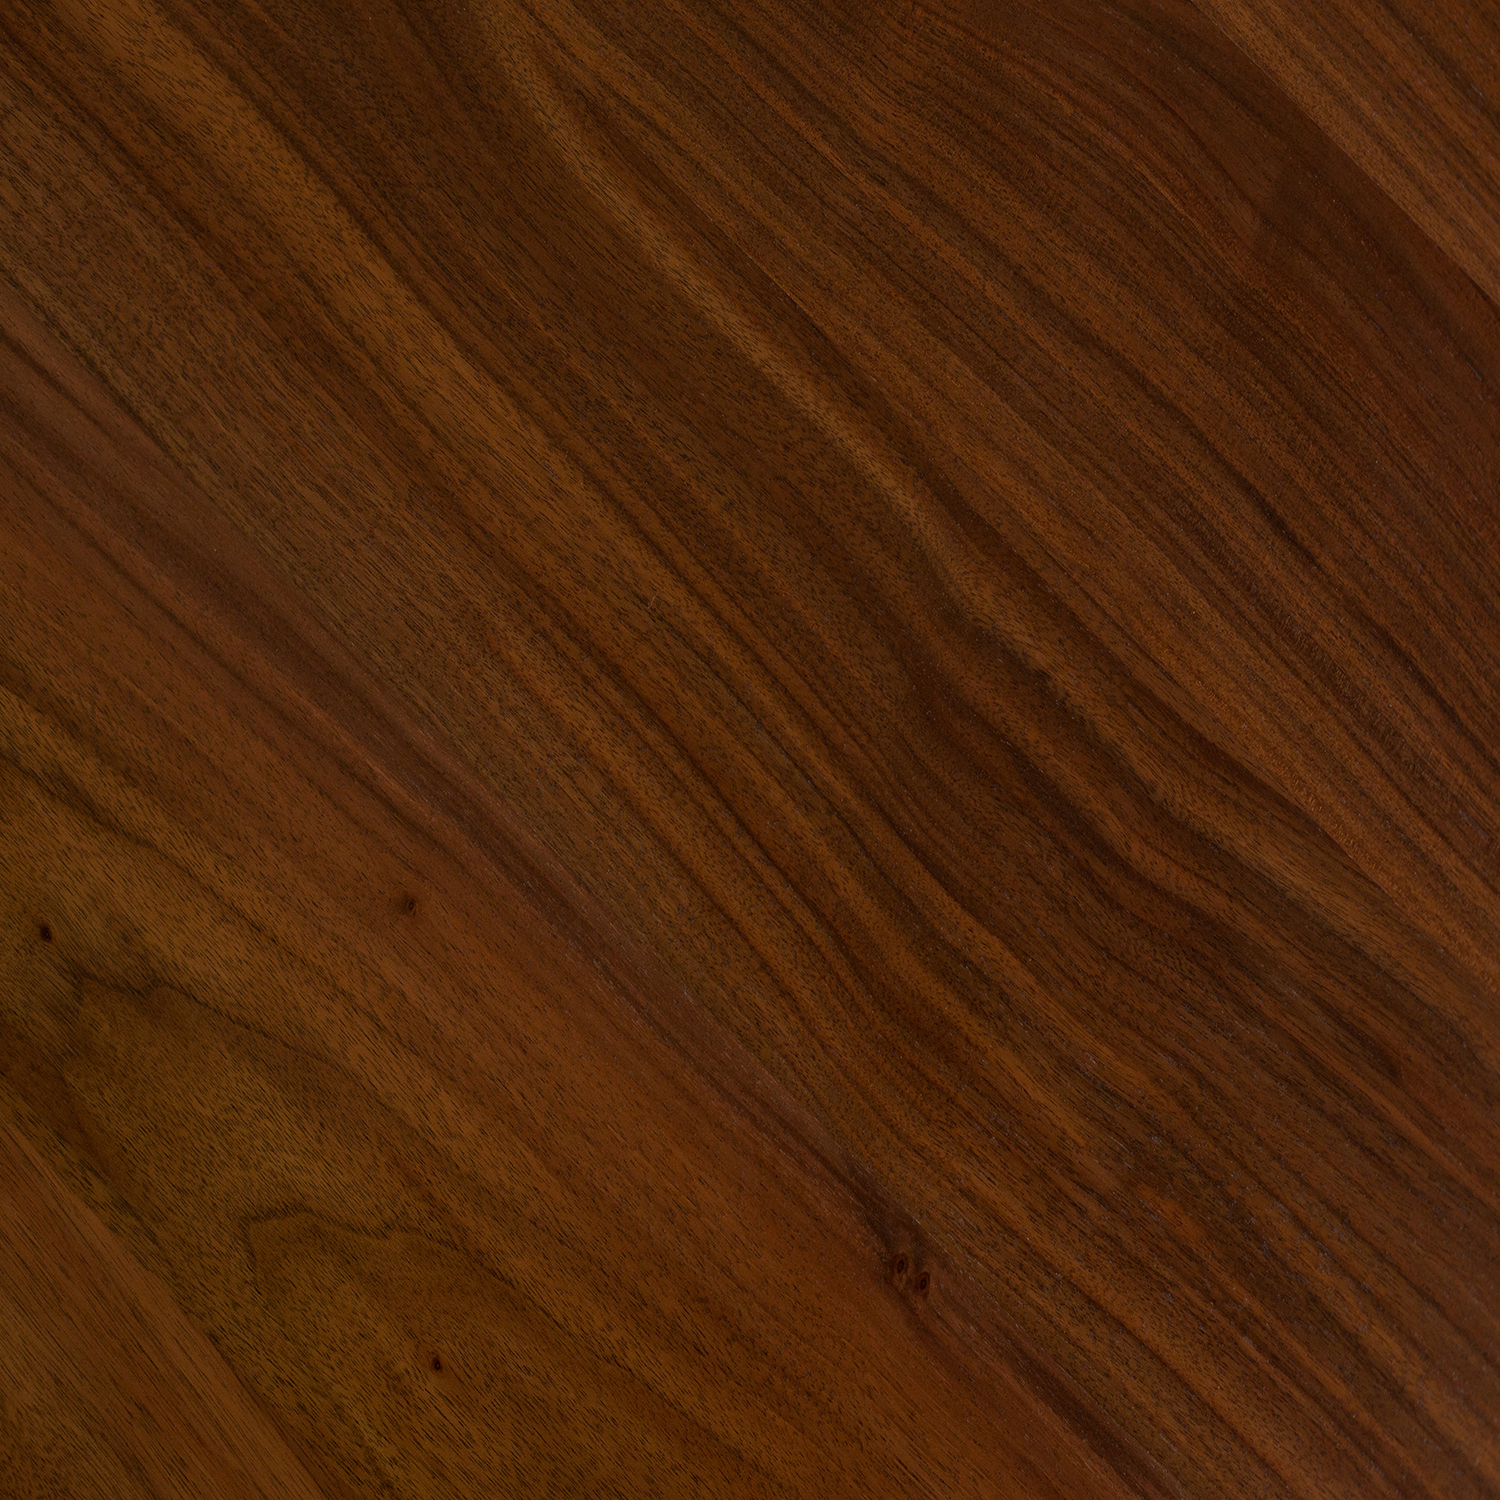 Oregon black Walnut -